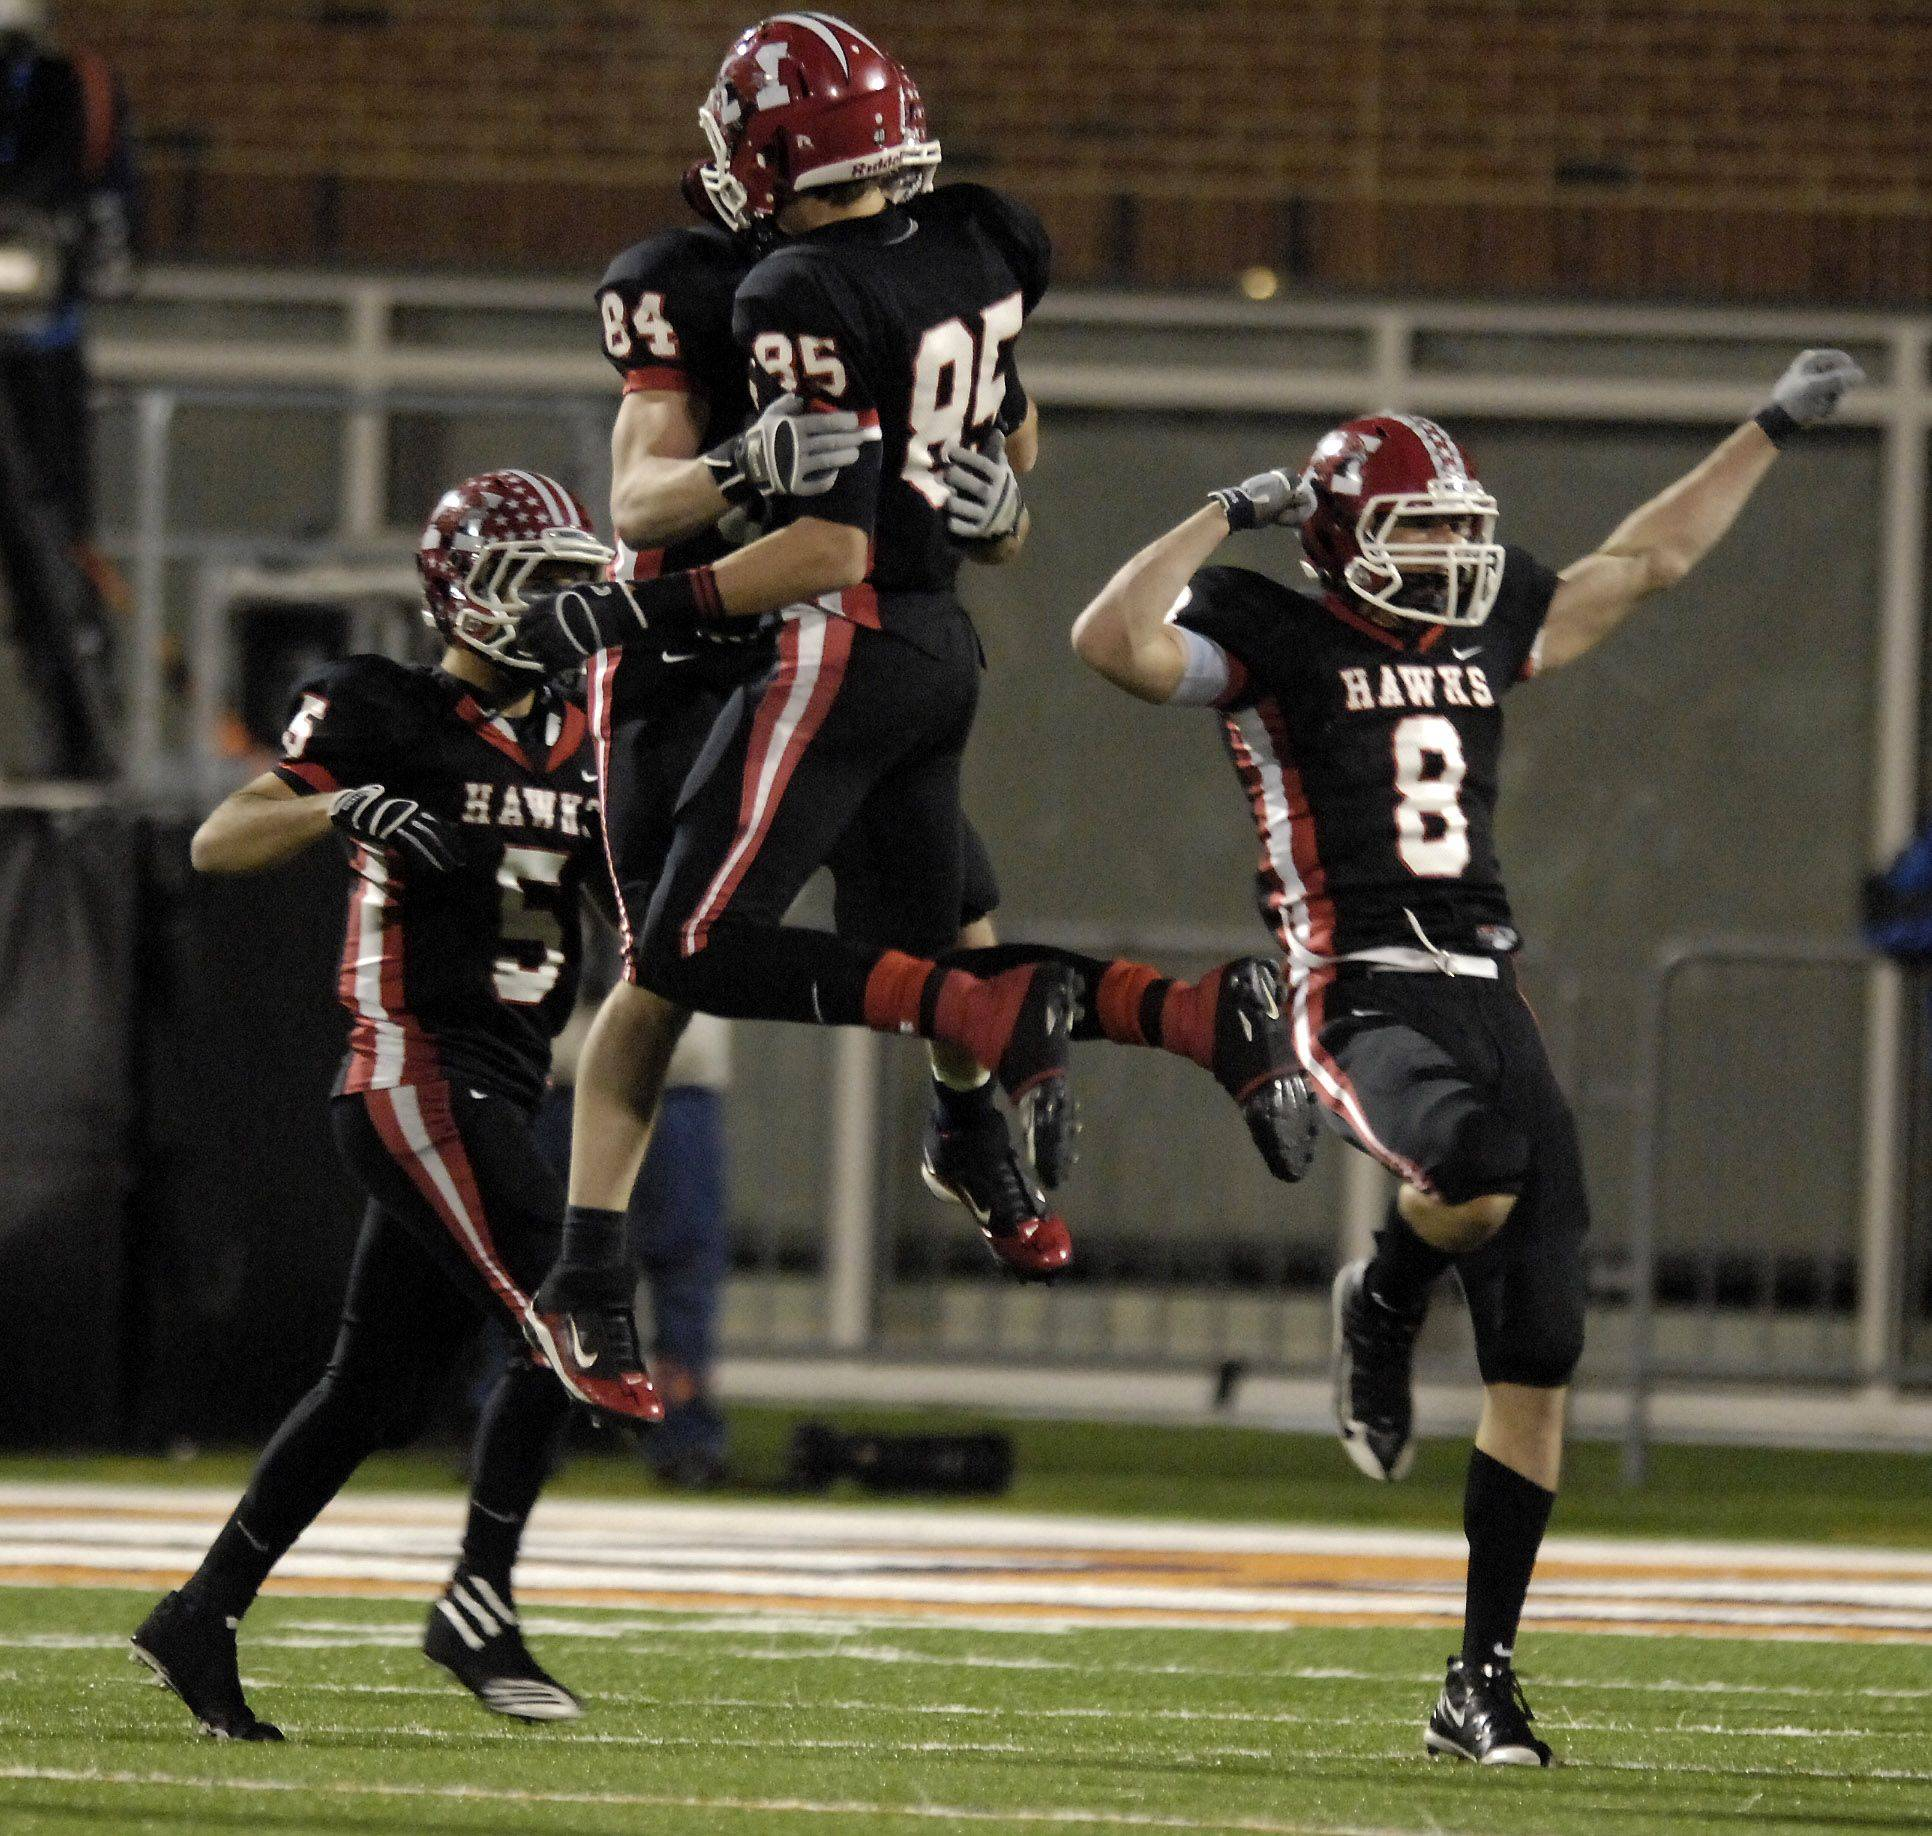 The Maine South defense, including (from left) John Fabiano, Andrew Hjellming, Cody Horodnik, and Patrick Swiszcz celebrate after stopping Mt. Carmel on a fourth and goal in the third quarter during the Class 8A state final in Champaign Saturday.